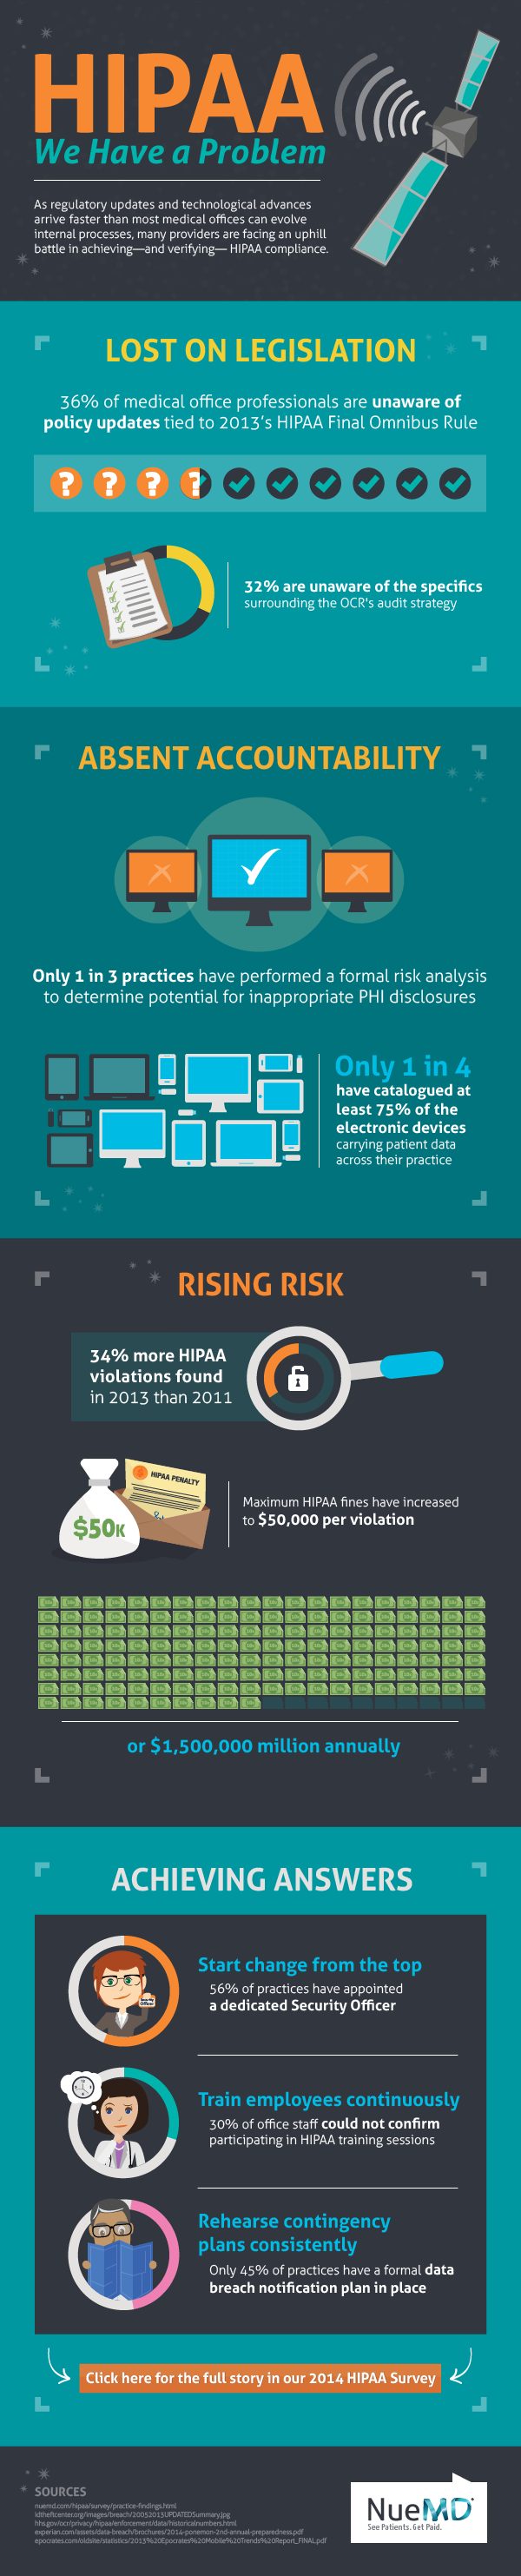 Is HIPAA Being Complied With? - Infographic